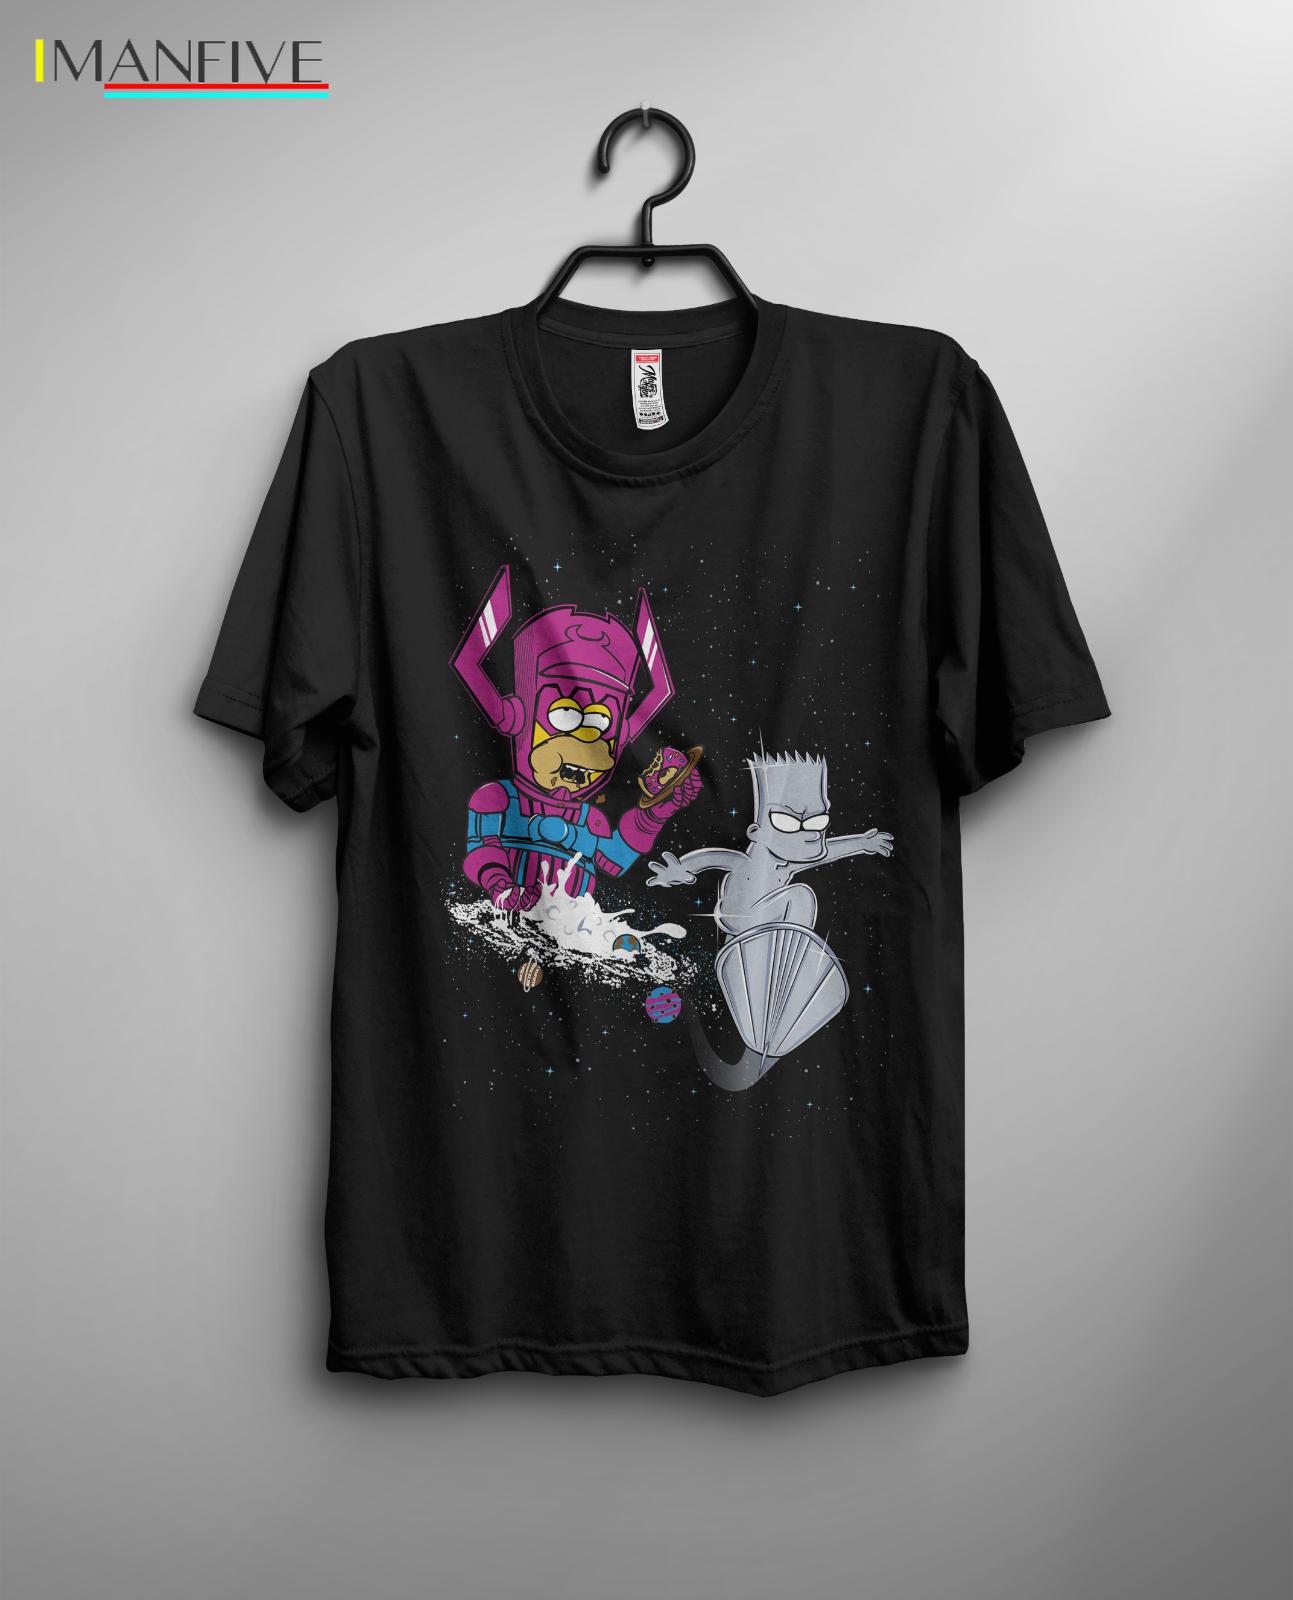 The Rad Surfer T shirt Simpson Silver Surfer Galactus Bart Homer Comics FUnny Men Cotton T Shirt Printed T Shirt Top Tee in T Shirts from Men 39 s Clothing